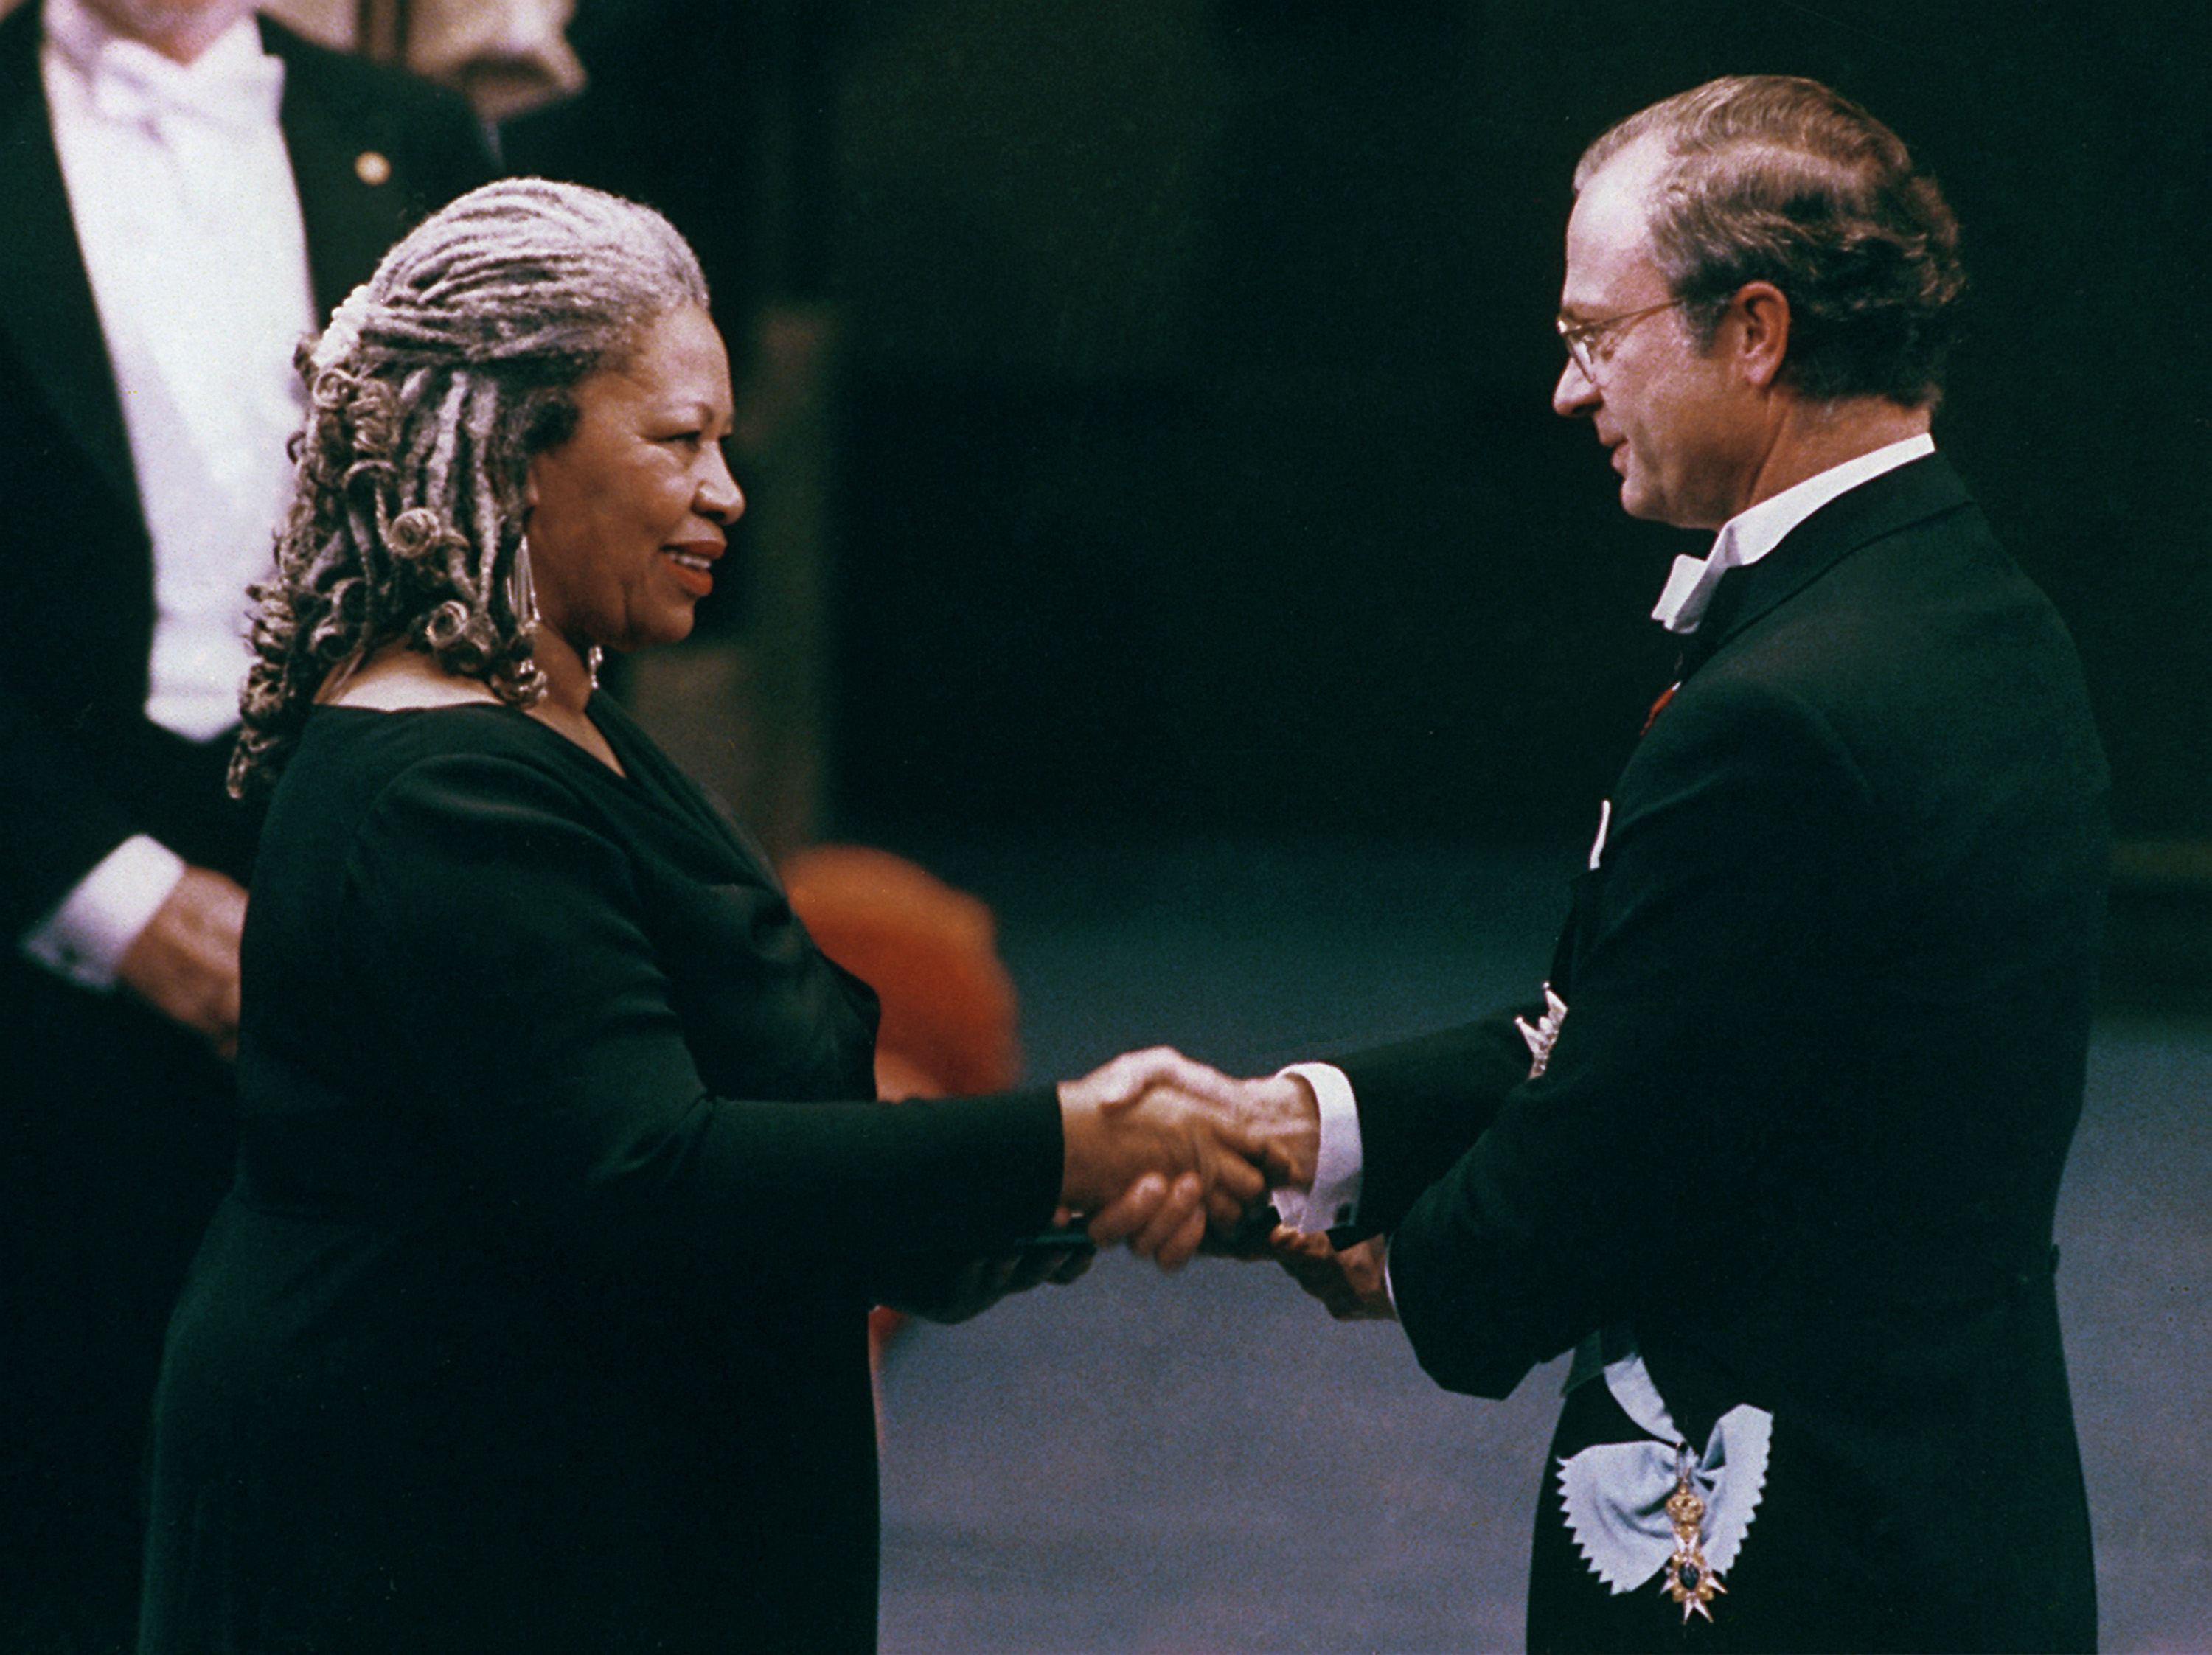 American writer Toni Morrison receives the Nobel Prize in literature from King Carl XVI Gustaf of Sweden, right, in the Concert Hall in Stockholm, Sweden, Friday, Dec. 10, 1993. Morrison, who was born in Lorain, Ohio in 1931 and teaches at Princeton University, N.J., is the first black woman to receive this prize. (AP Photo)